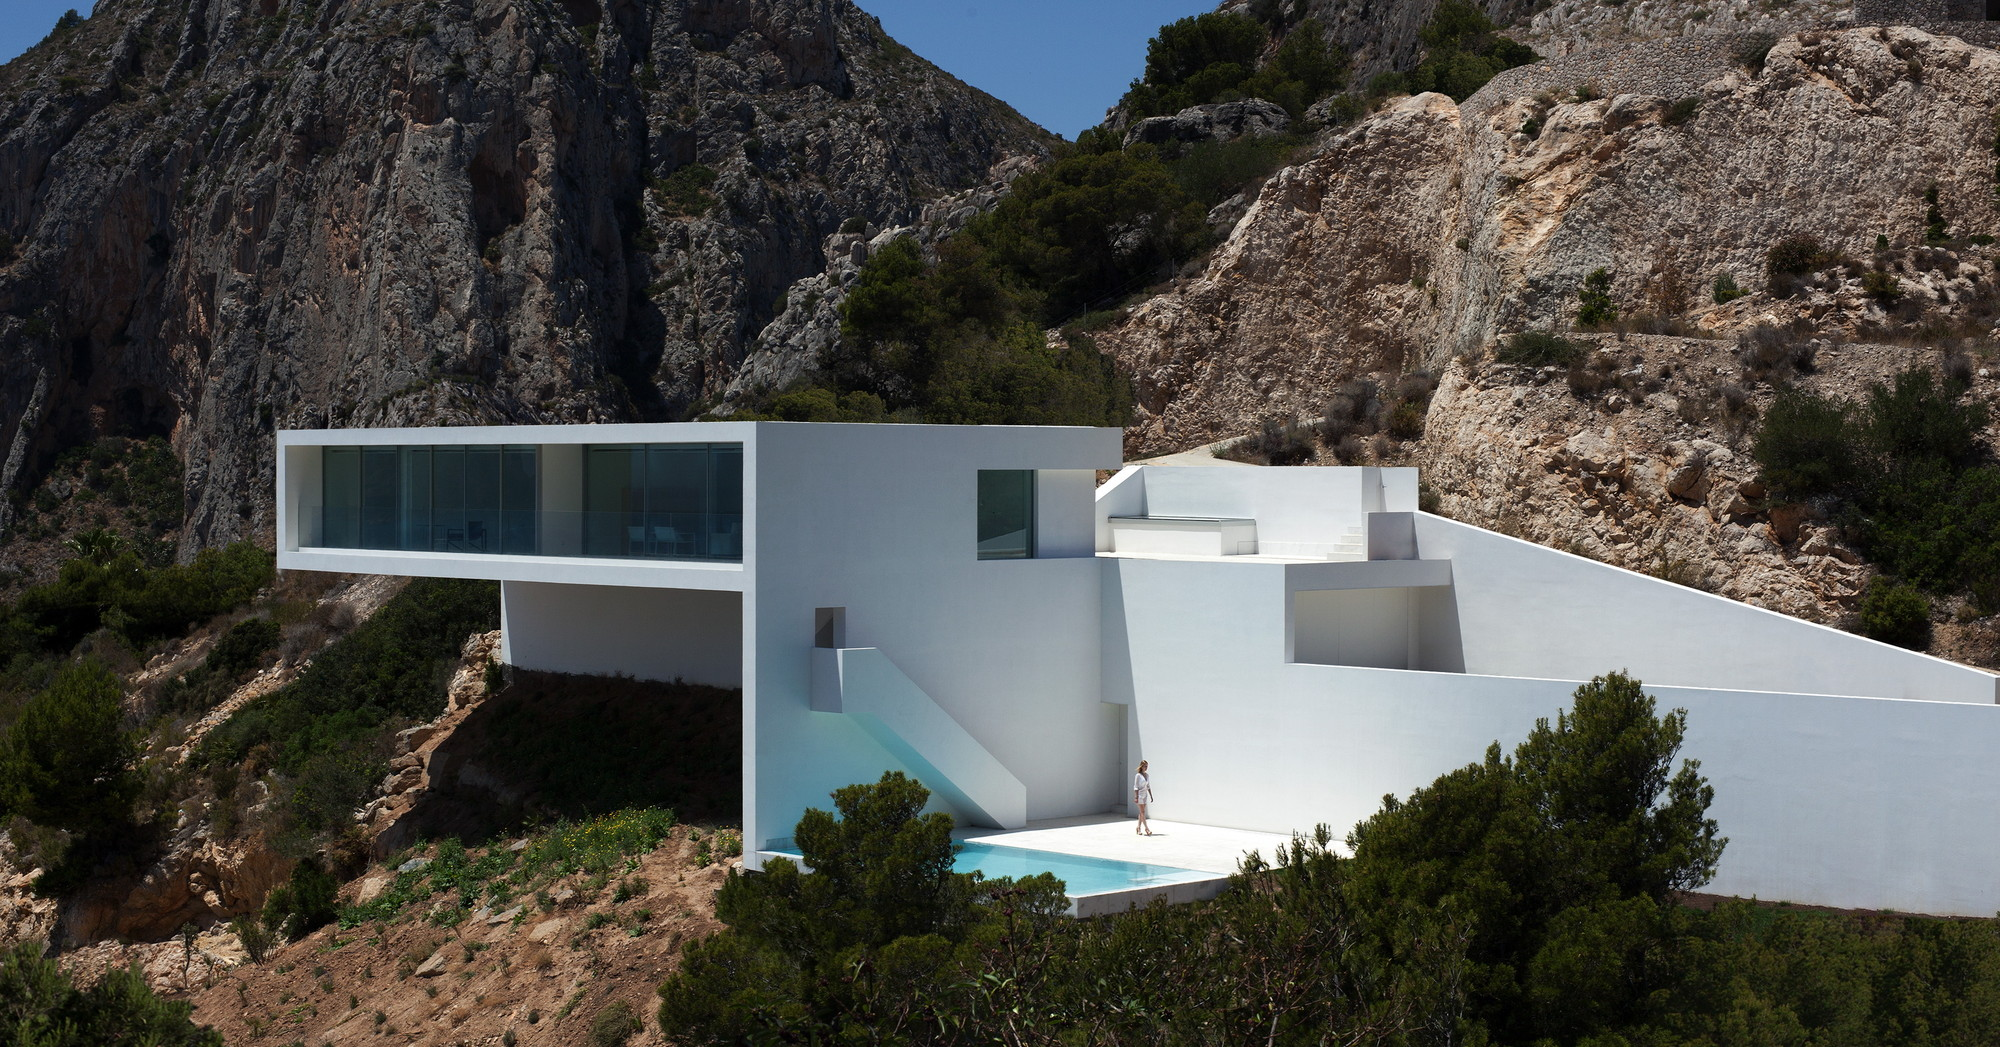 House on the Cliff / Fran Silvestre Arquitectos, © Diego Opazo